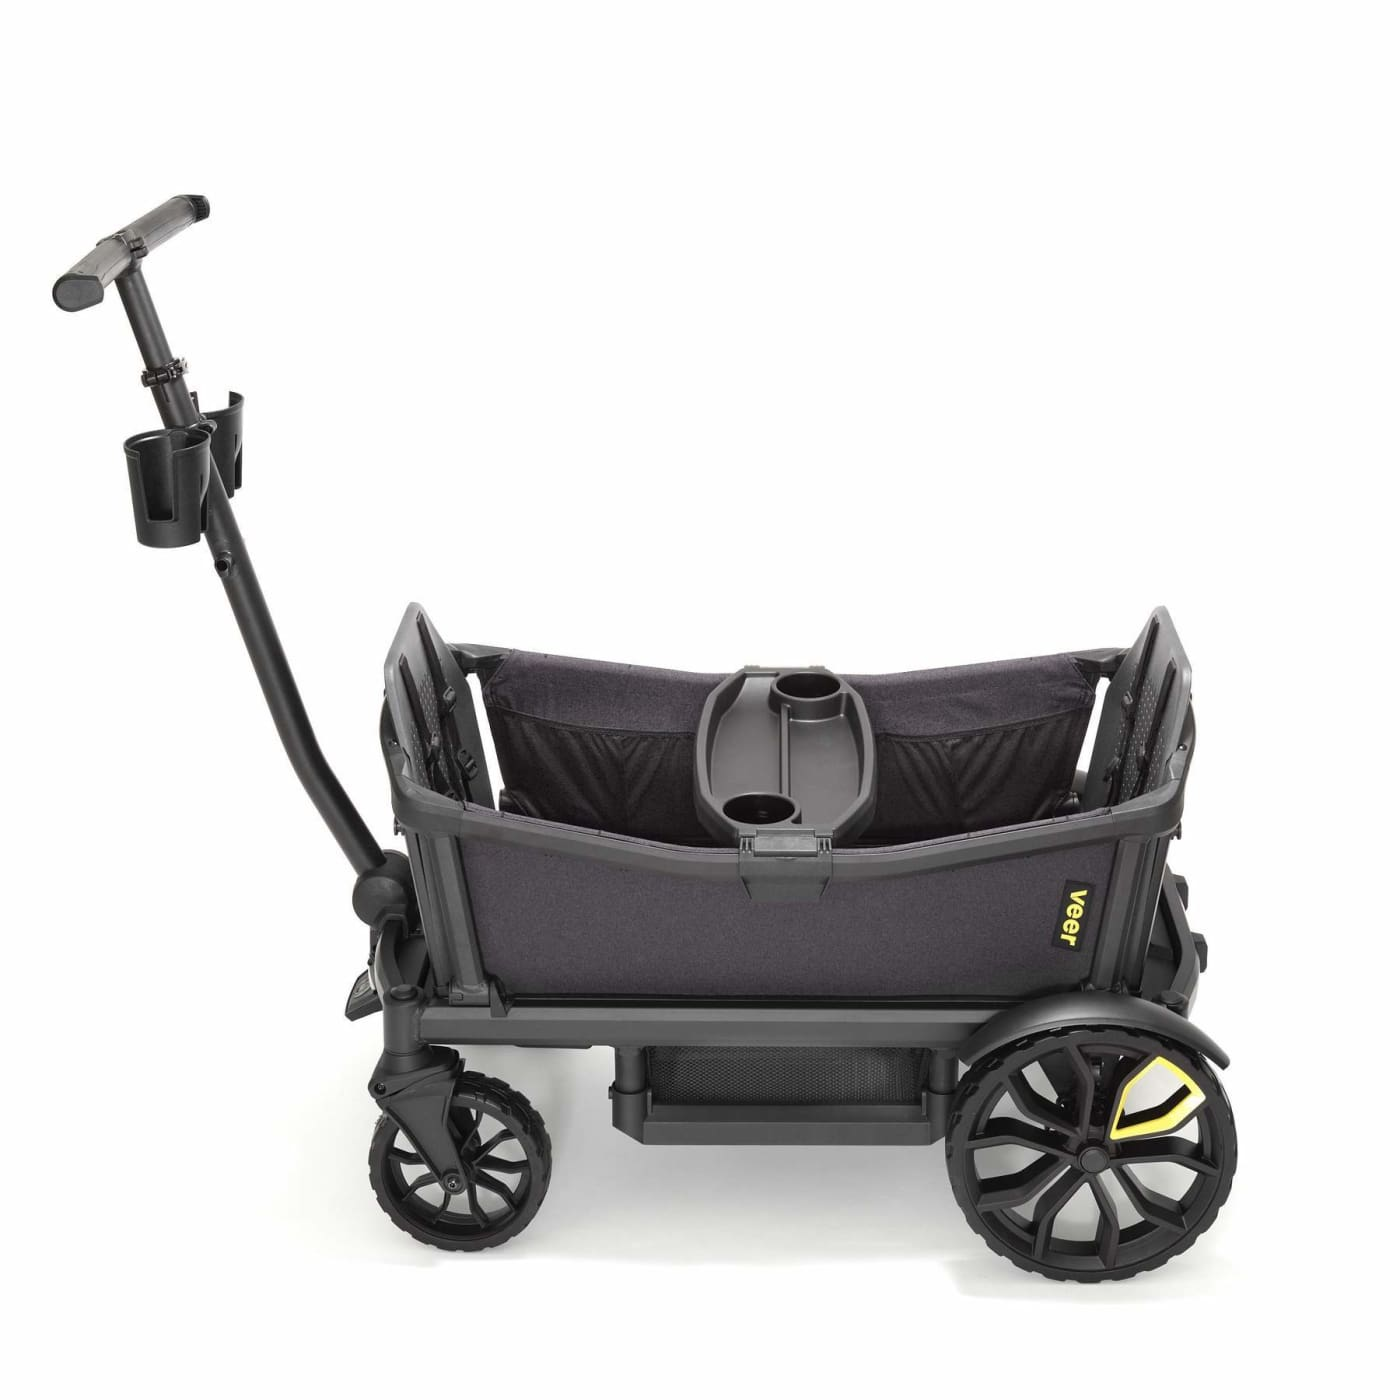 Veer Cruiser - PRAMS & STROLLERS - COMPACT/TRAVEL